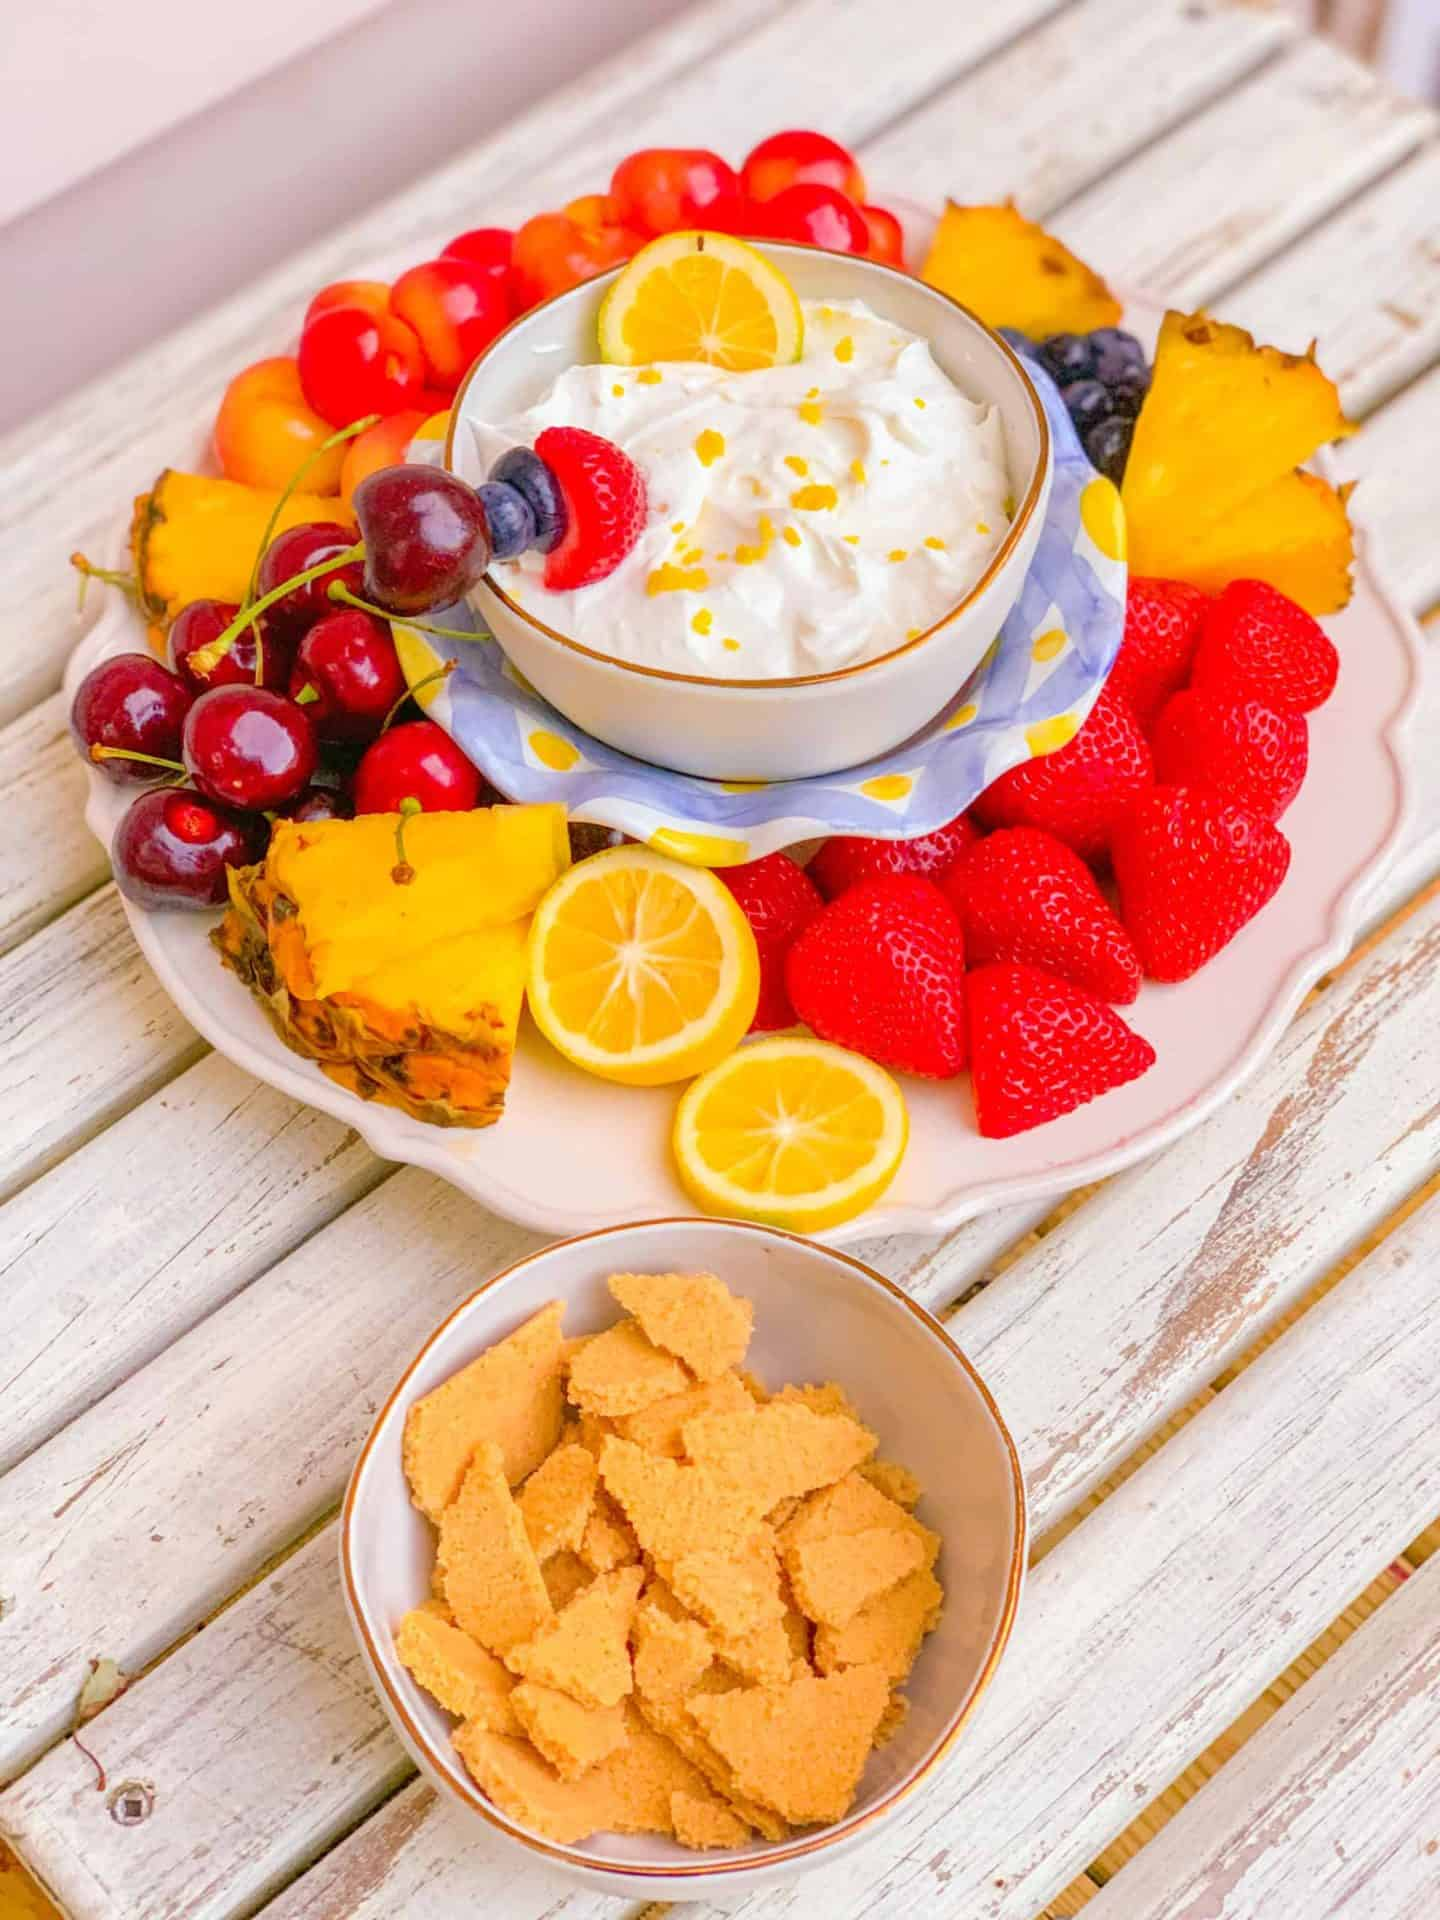 How to make lemon fruit dip with cream cheese